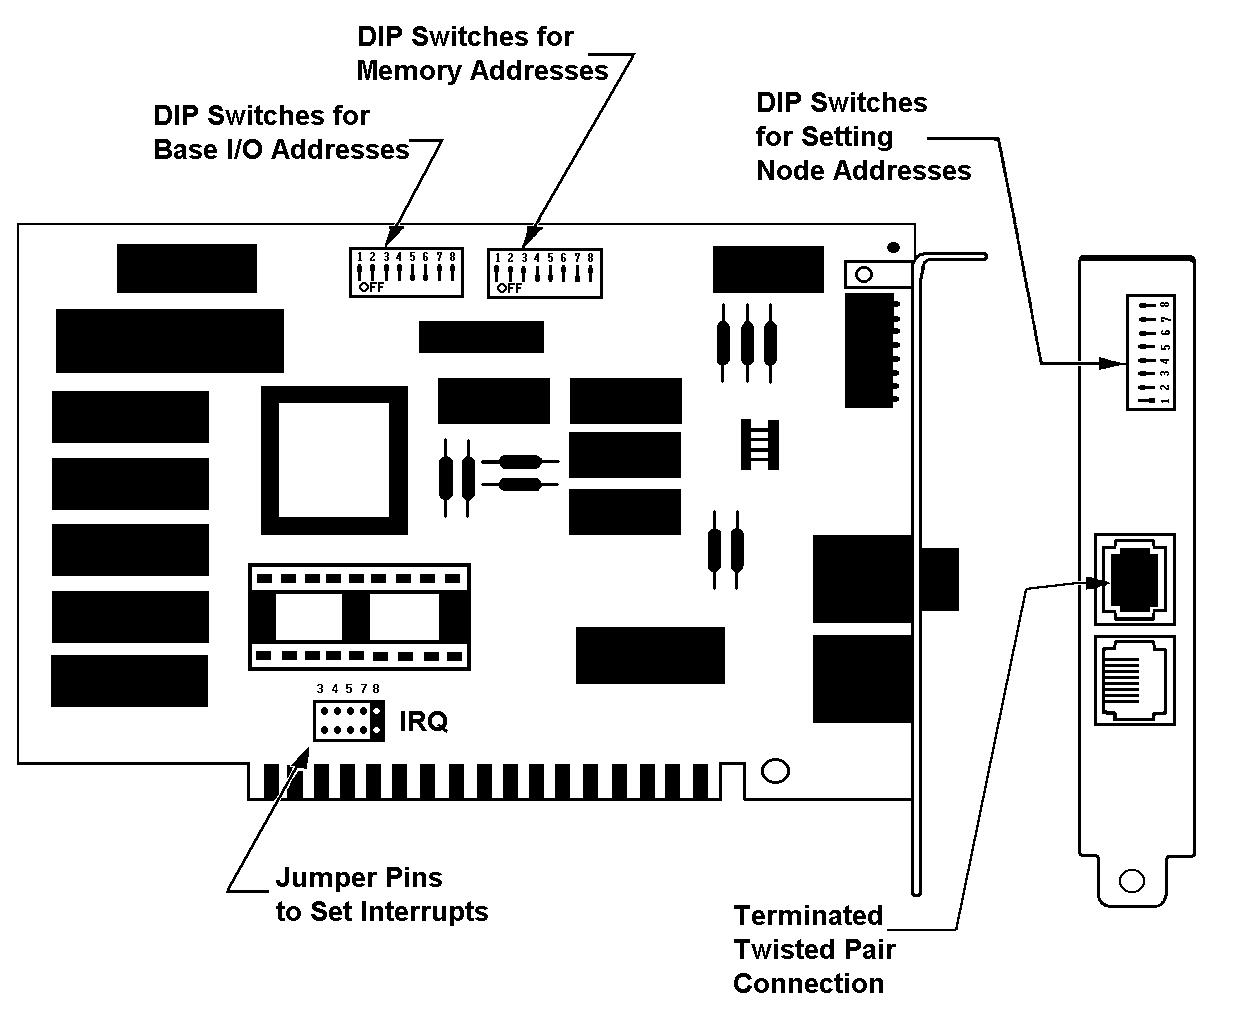 network interface device diagram electron dot for nitrogen itnw 2313 exploring arcnet specifications